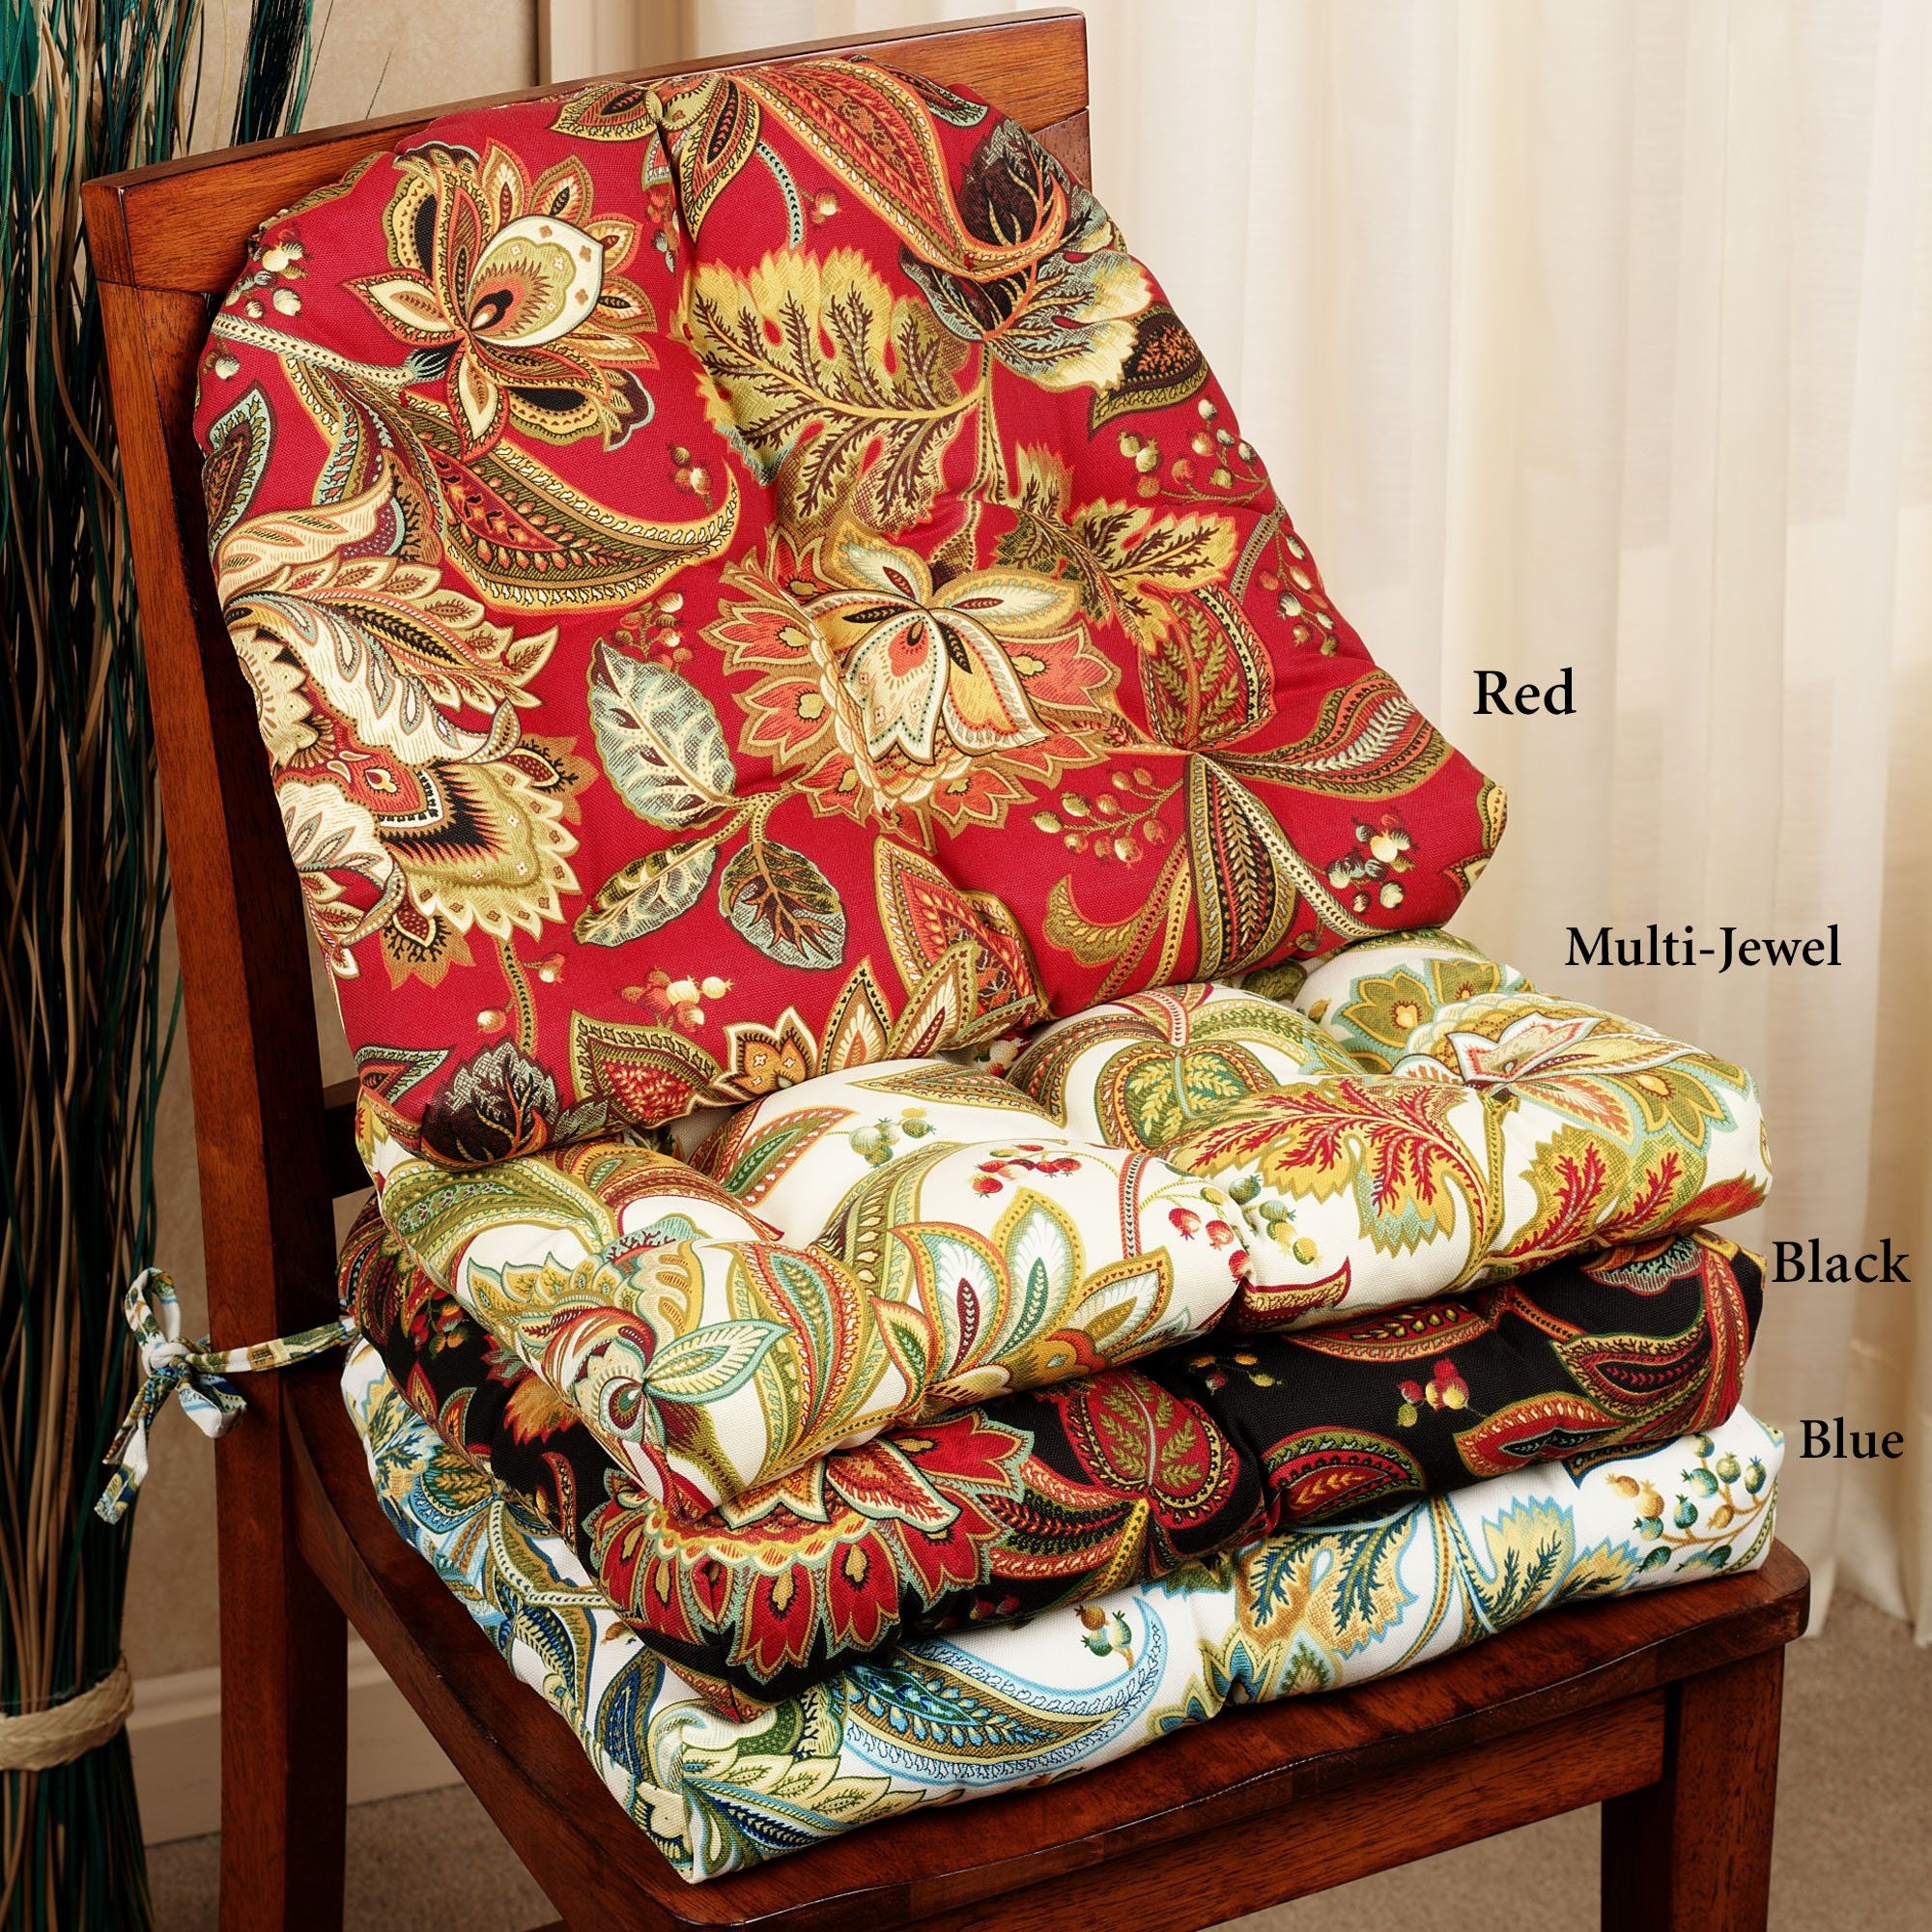 french country kitchen chair cushions curved back adirondack chairs valbella jacobean floral indoor outdoor cushion set